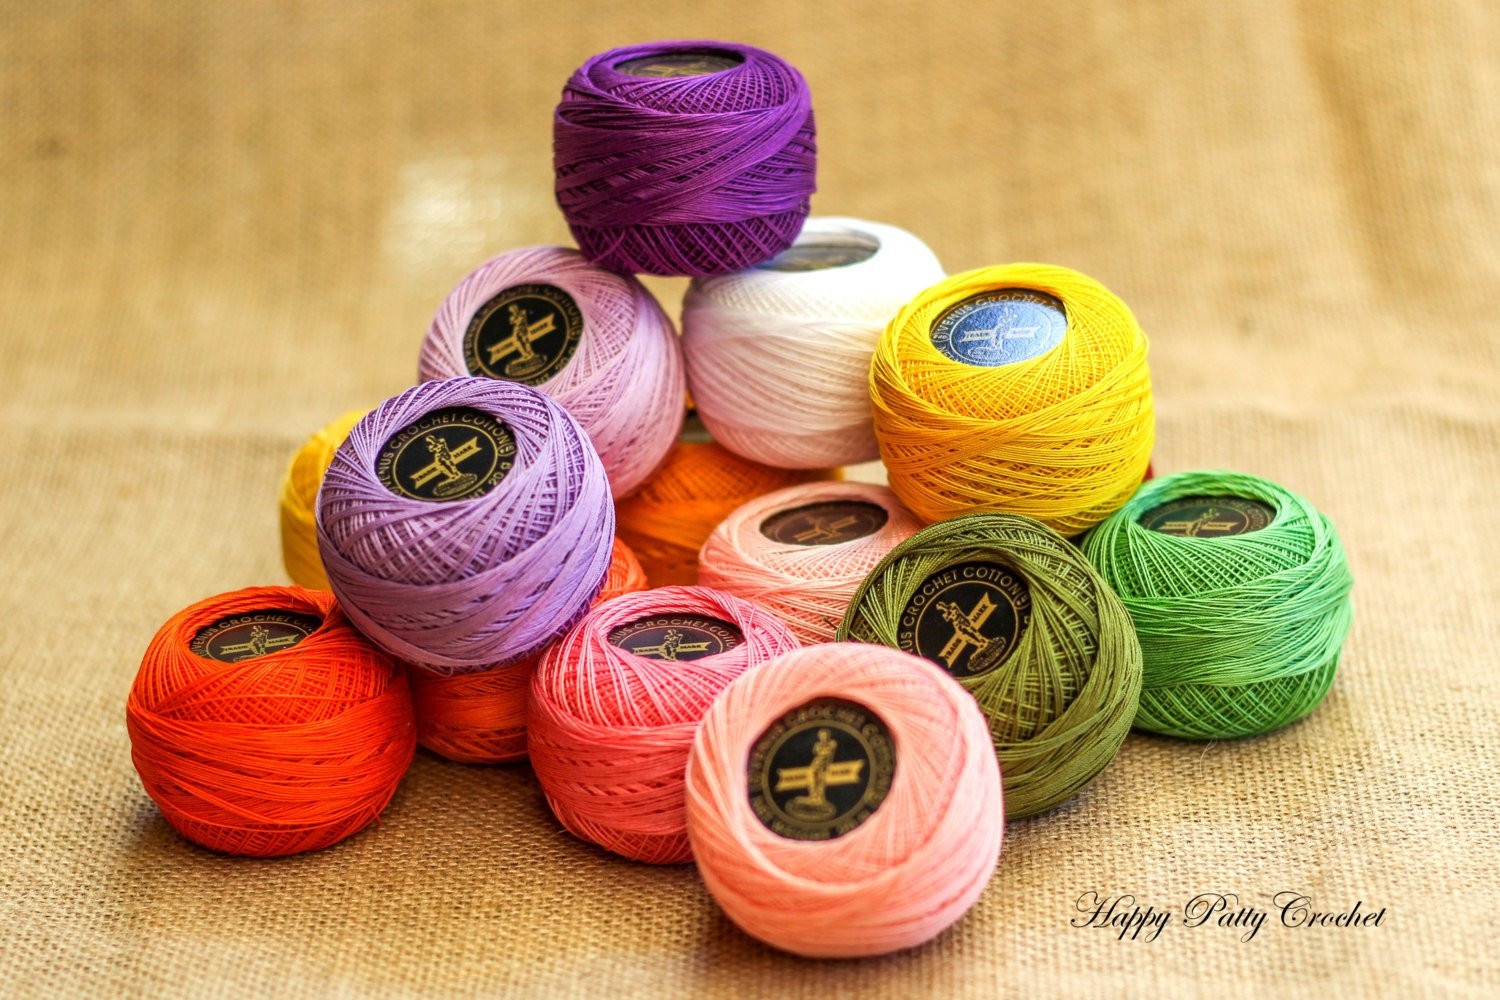 Crochet Thread Sizes Fresh Cotton Thread Size 40 Venus Crochet Cotton Thread Of Fresh 46 Images Crochet Thread Sizes